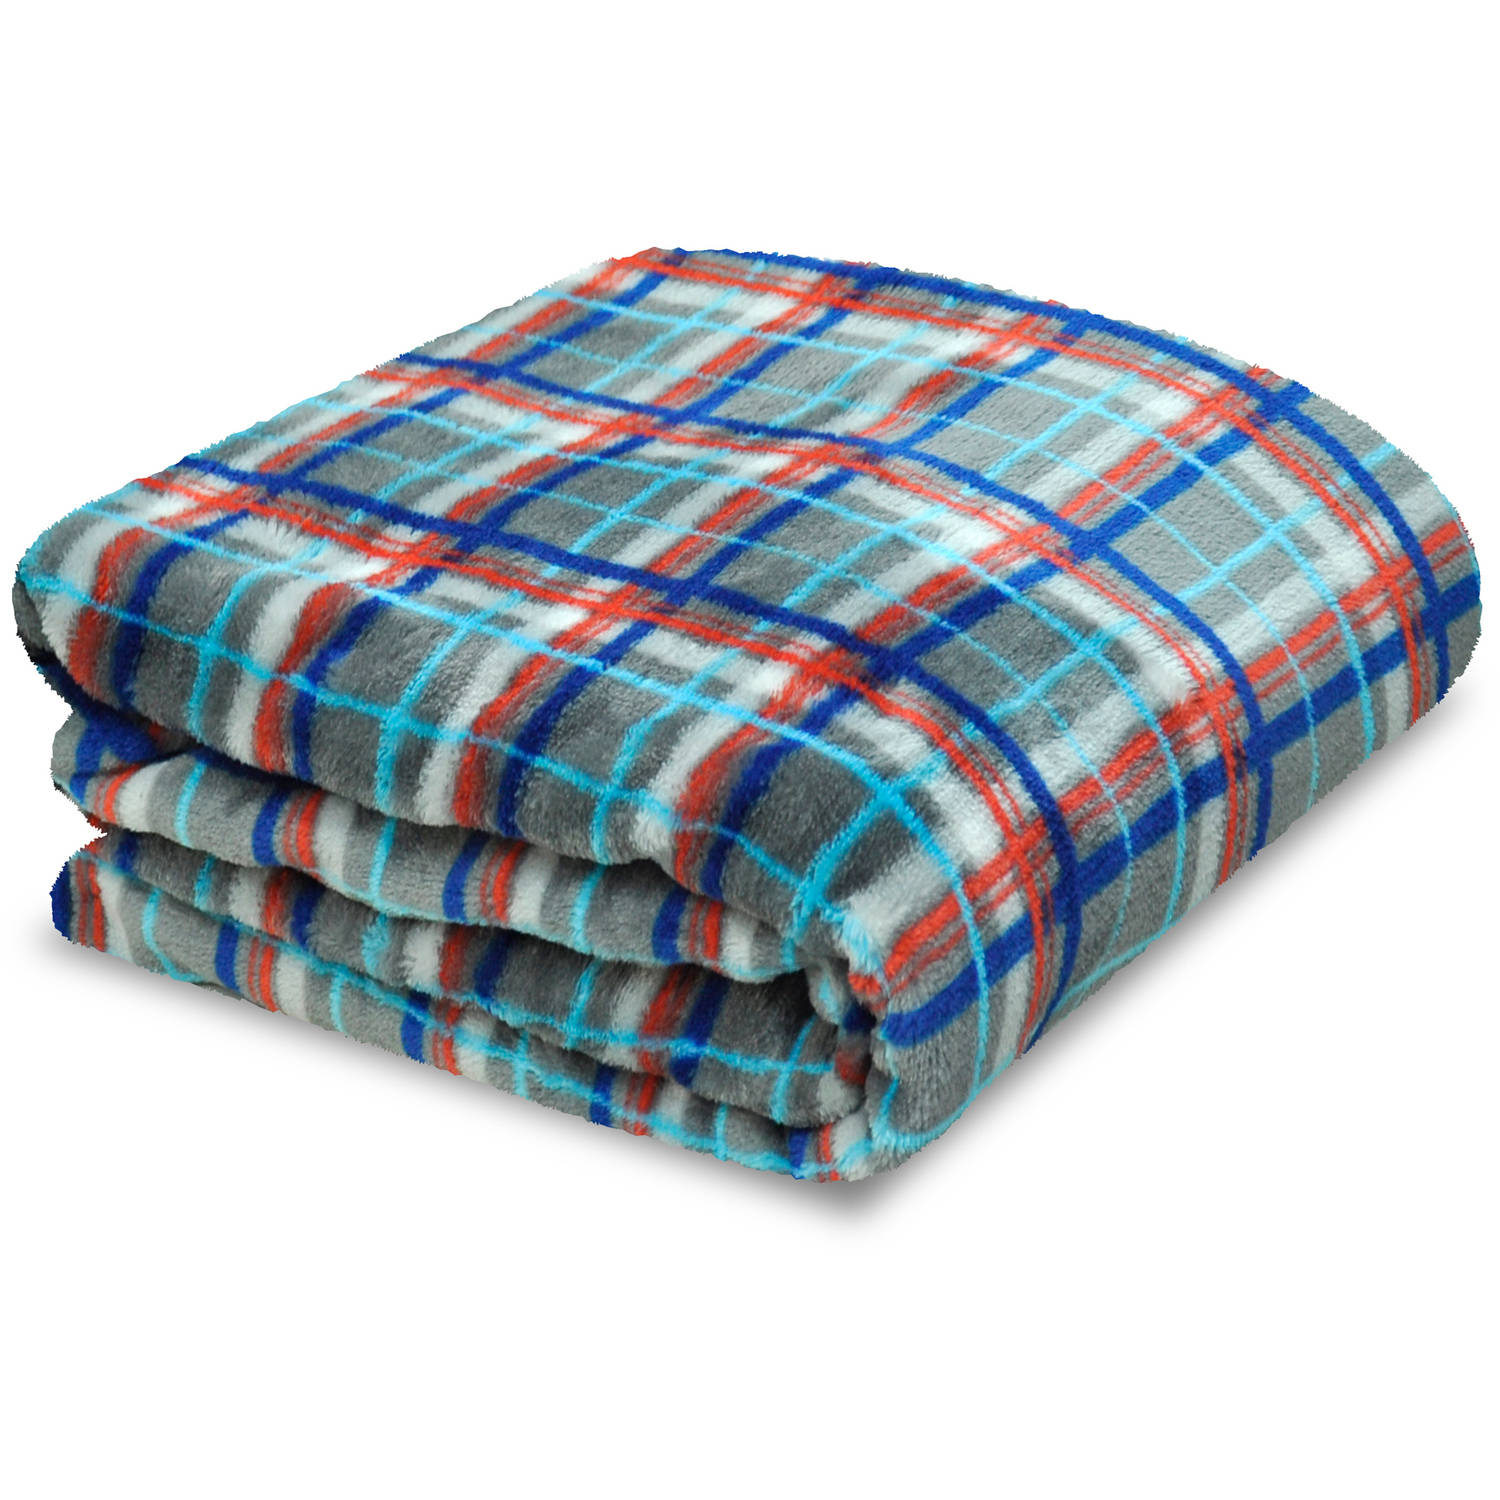 Mainstays Kids Plaid Plush Throw